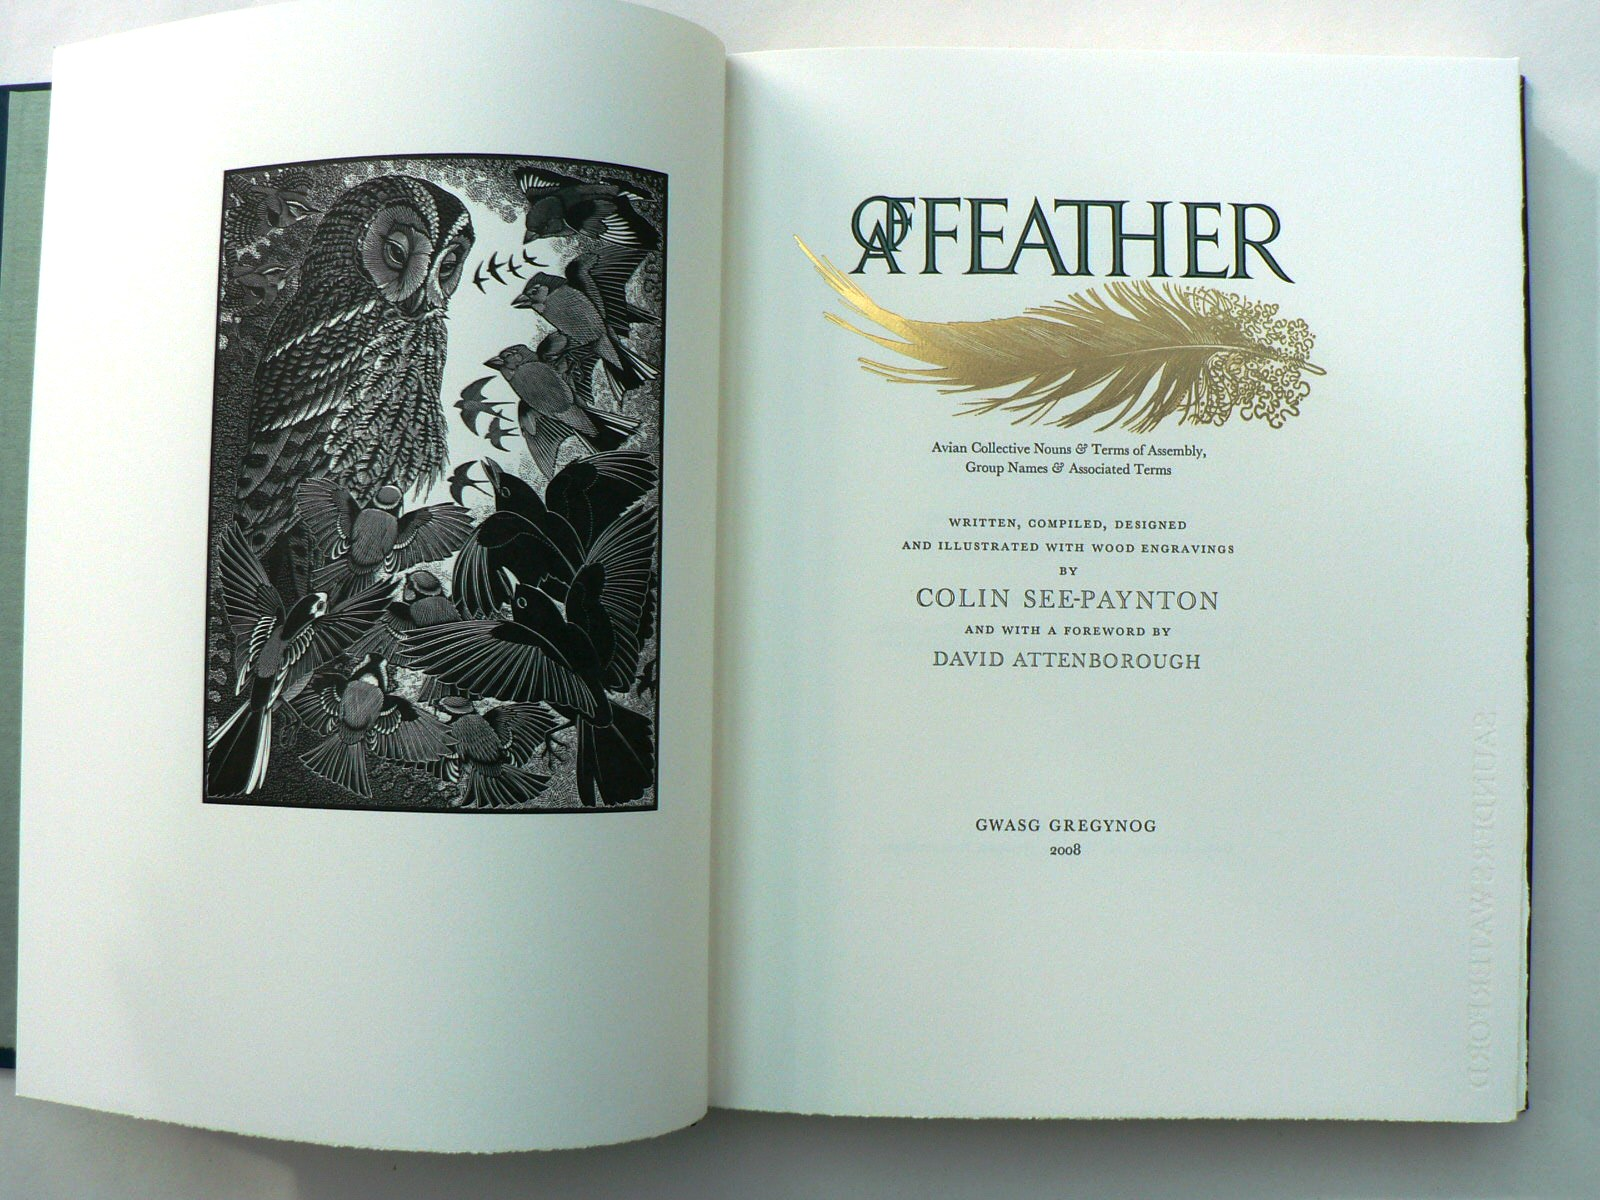 Of A Feather